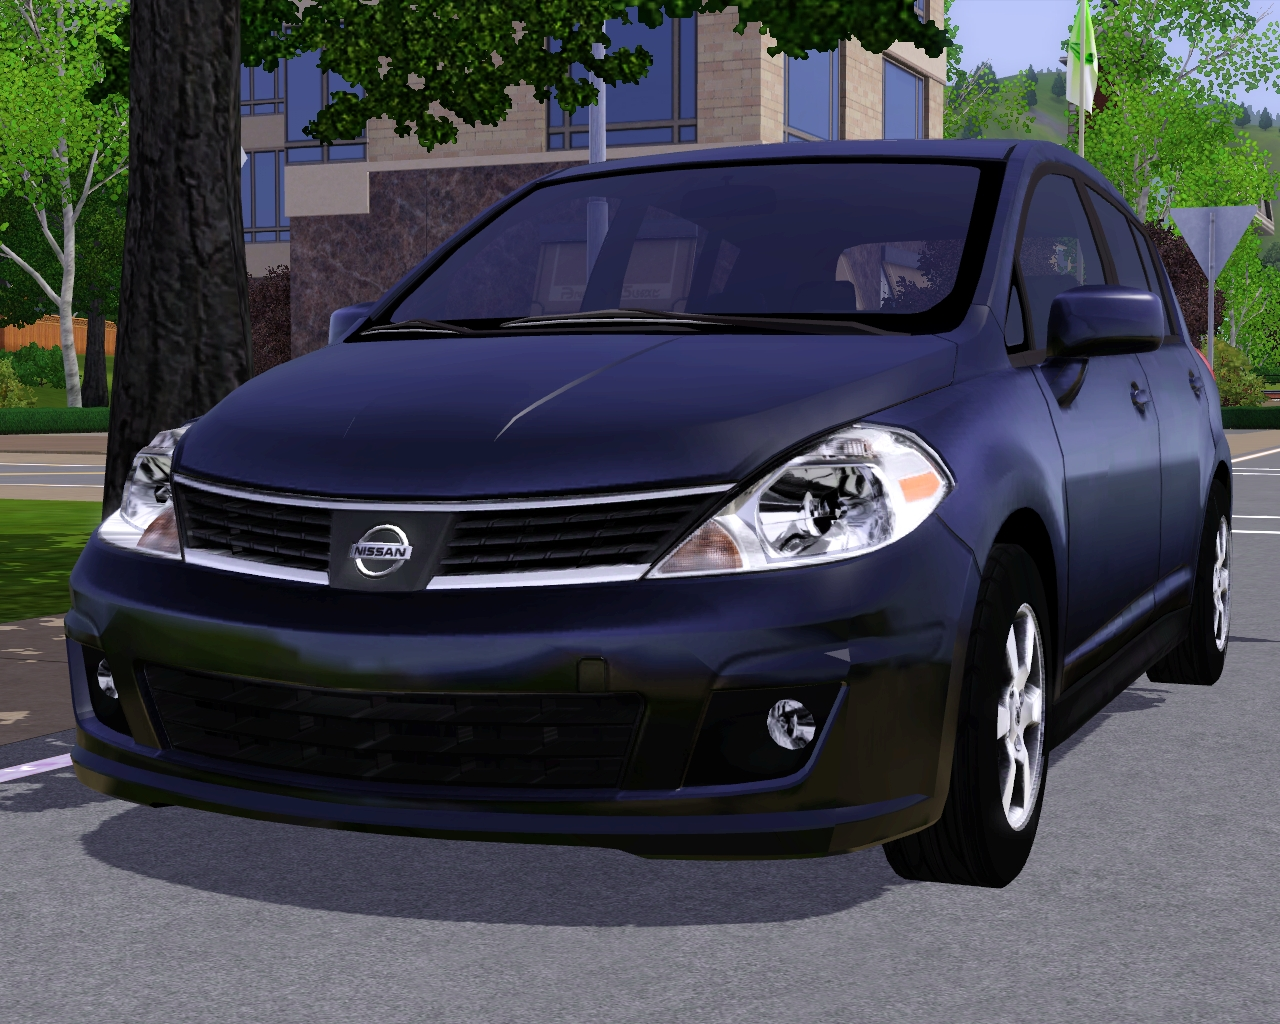 2009 Nissan Versa by Fresh-Prince